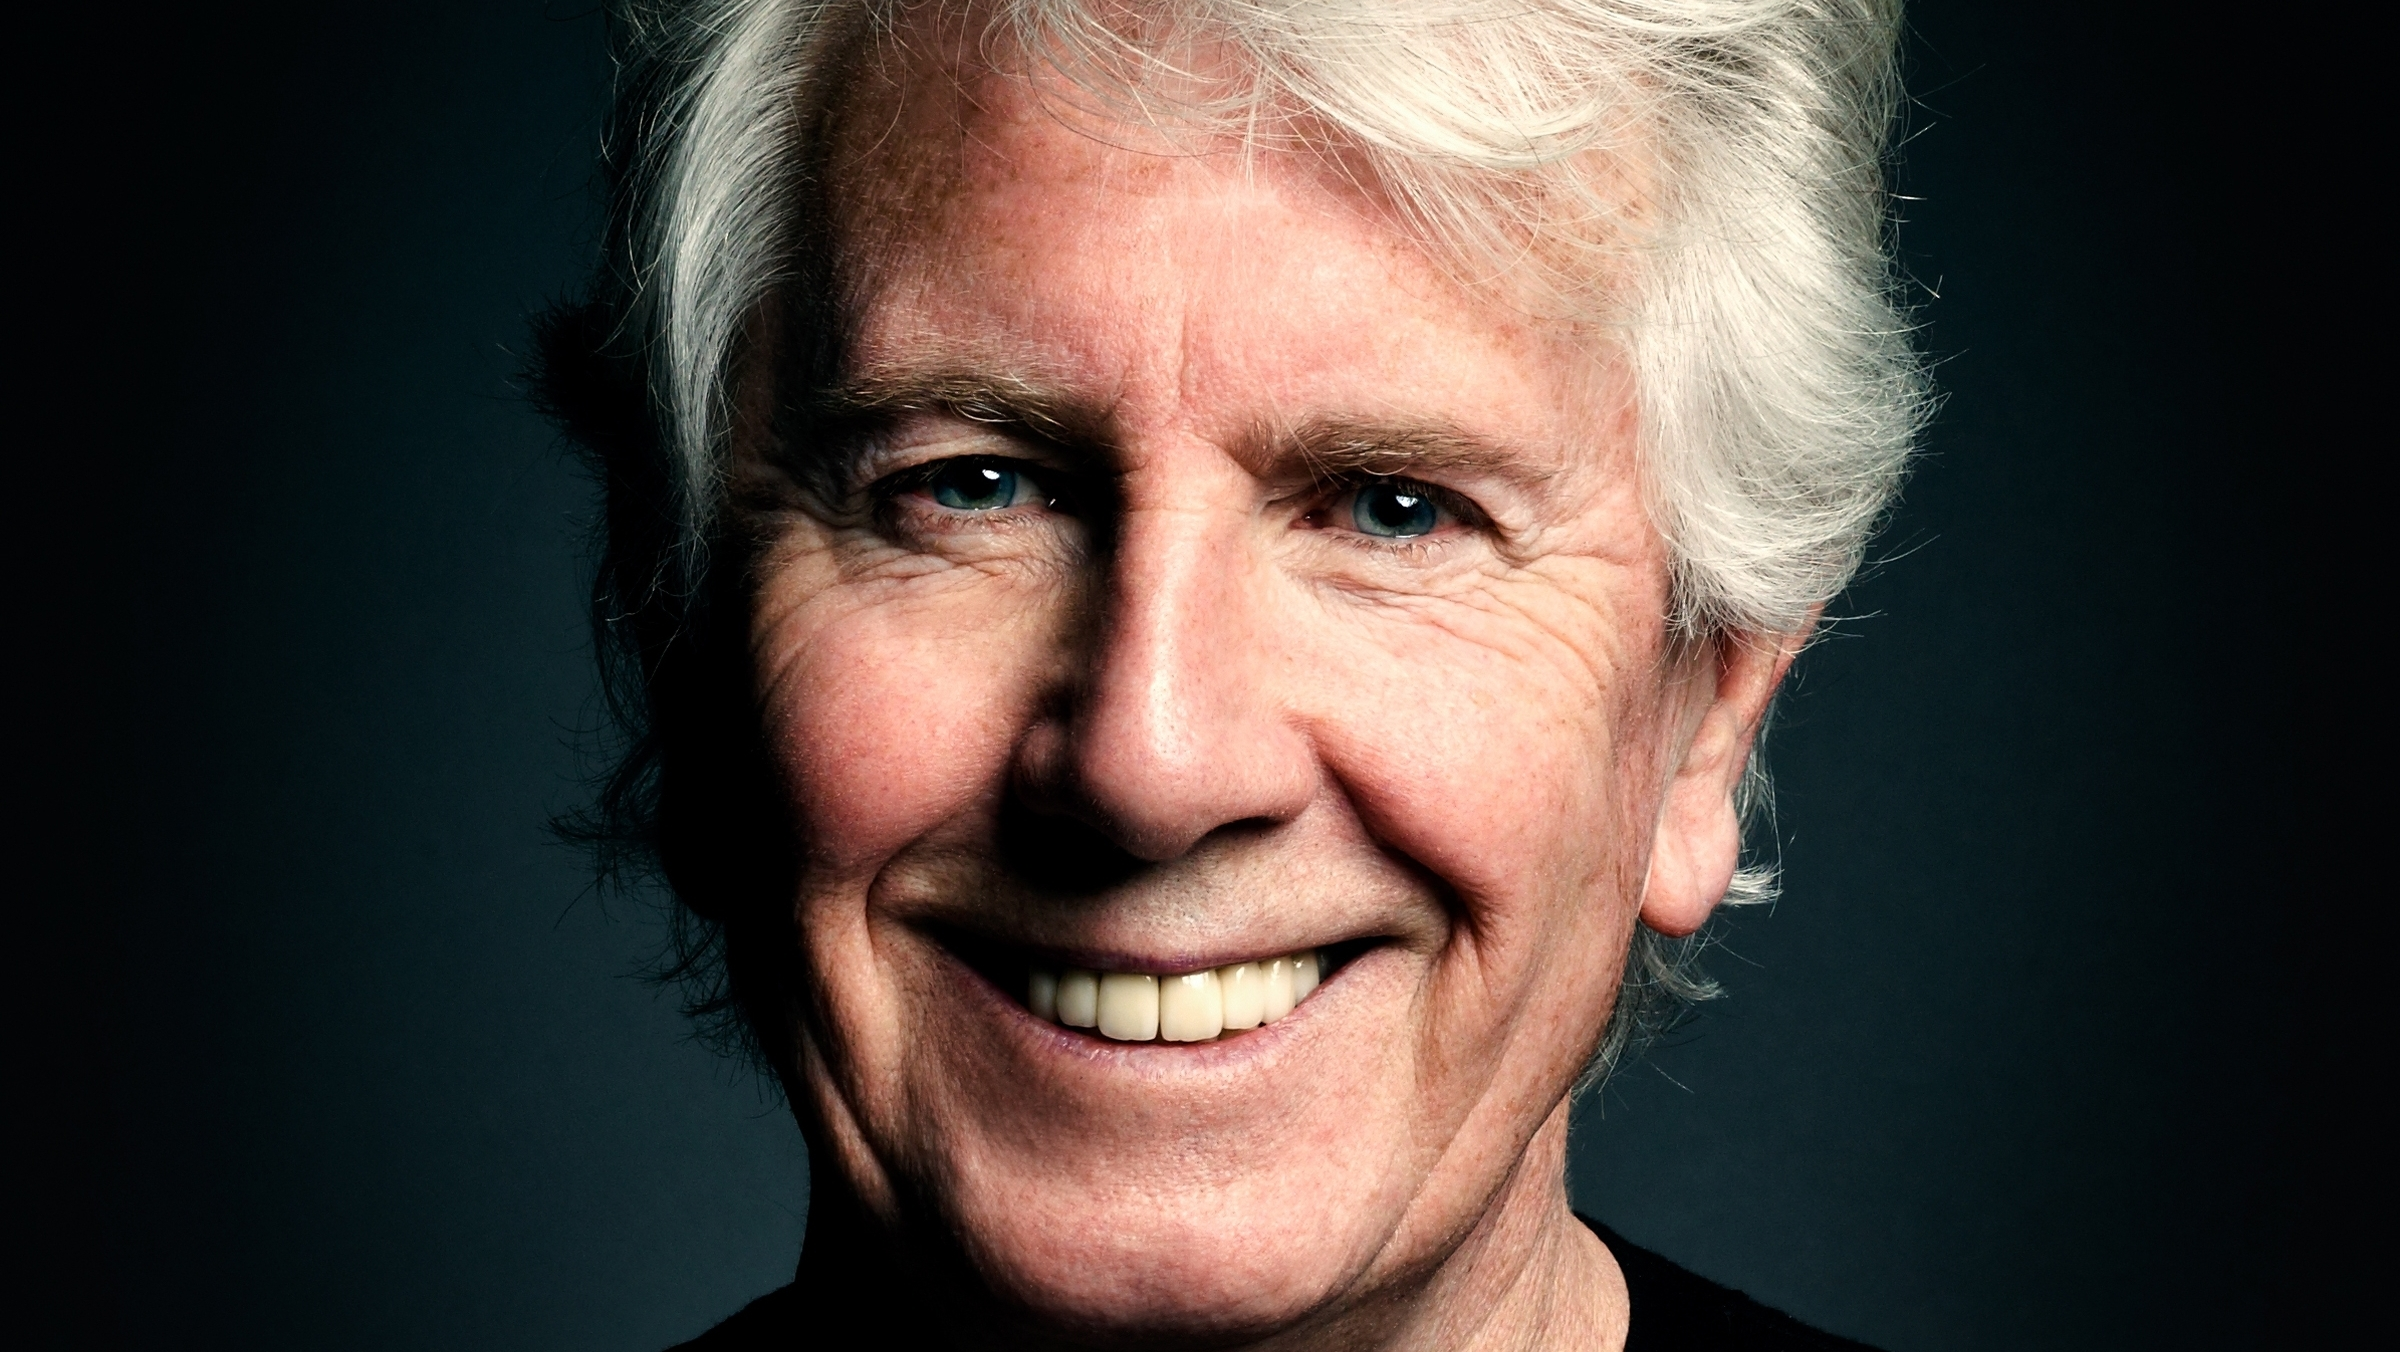 Alan clarke of the hollies wife sexual dysfunction